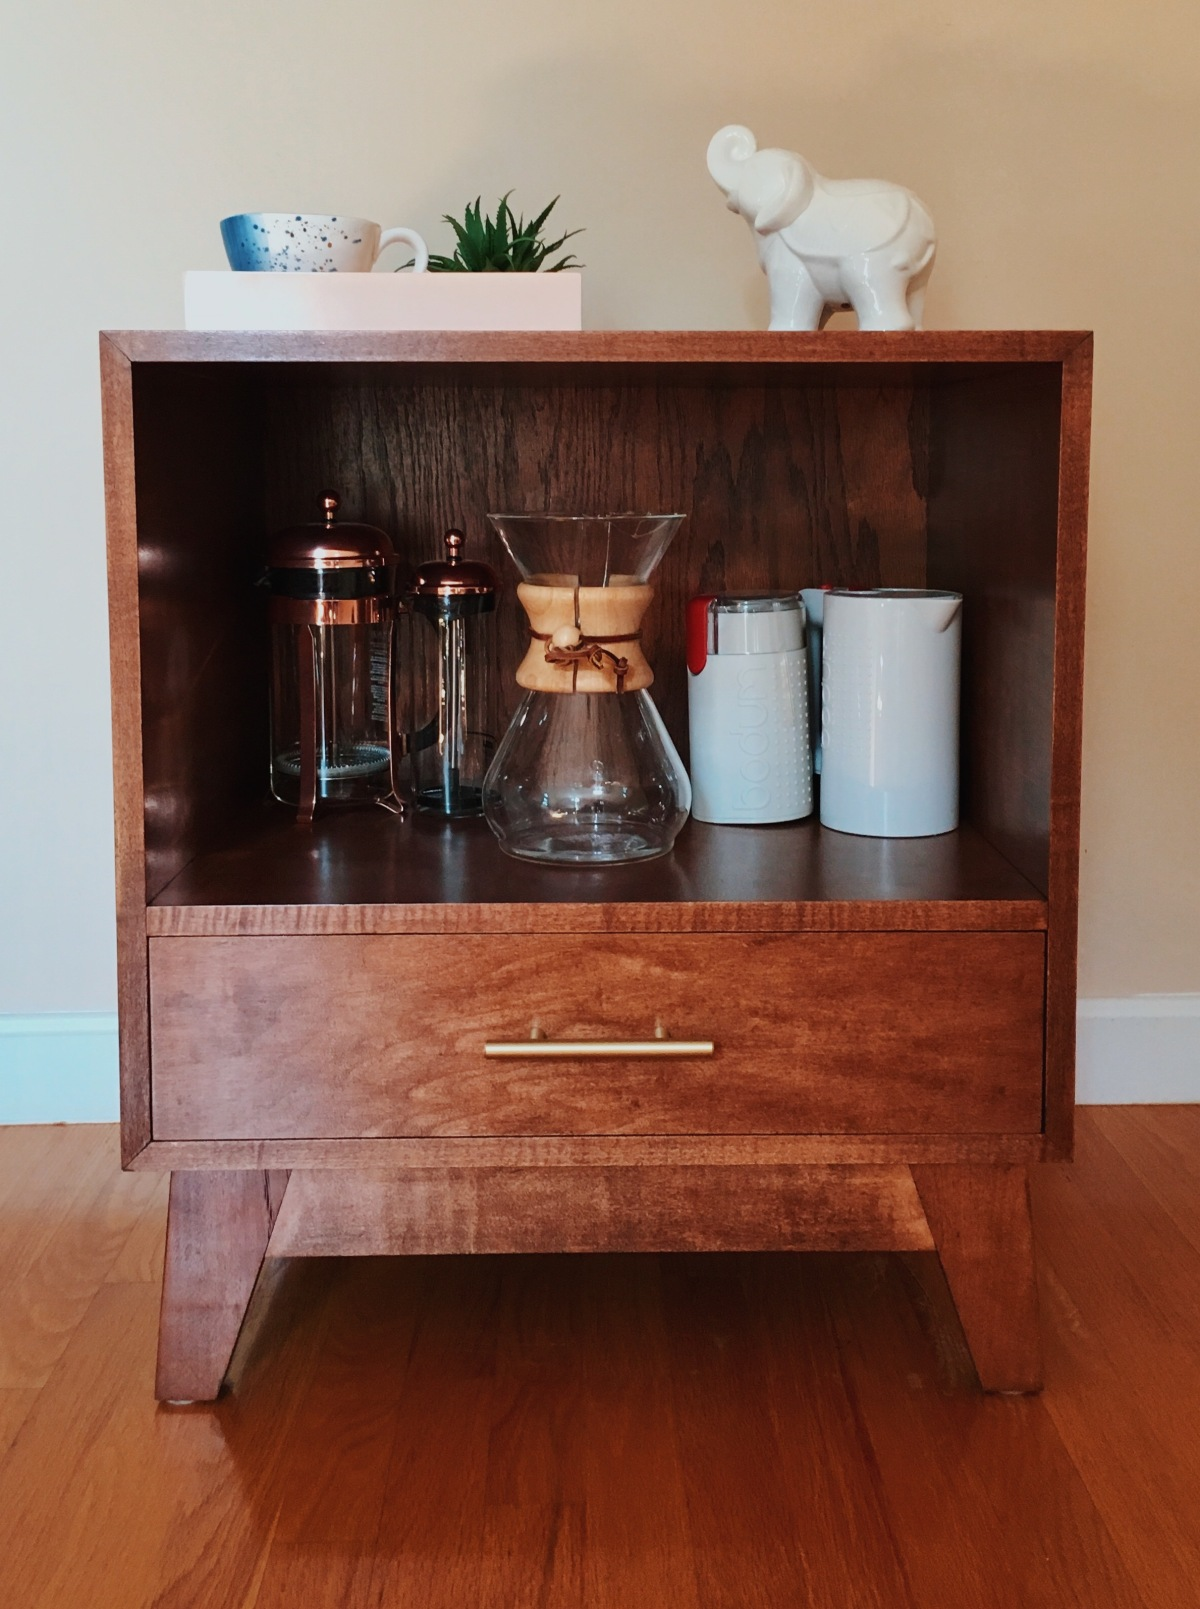 Assembling The Perfect CoffeeStation